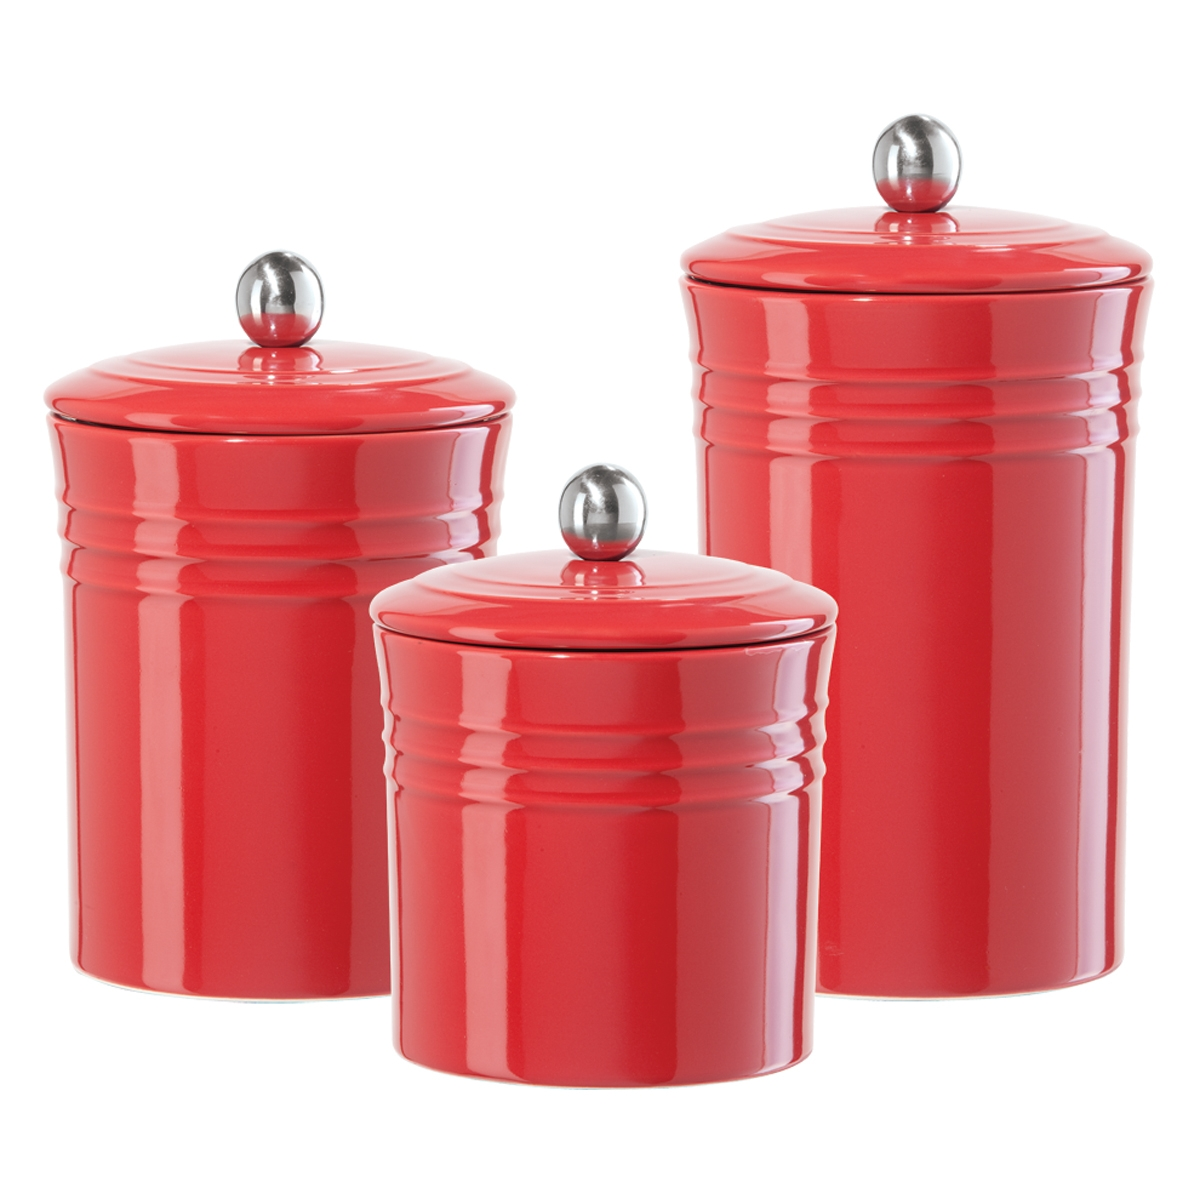 26+ Adorable Kitchen Storage Canister That Abound With Charming Traditional Touch